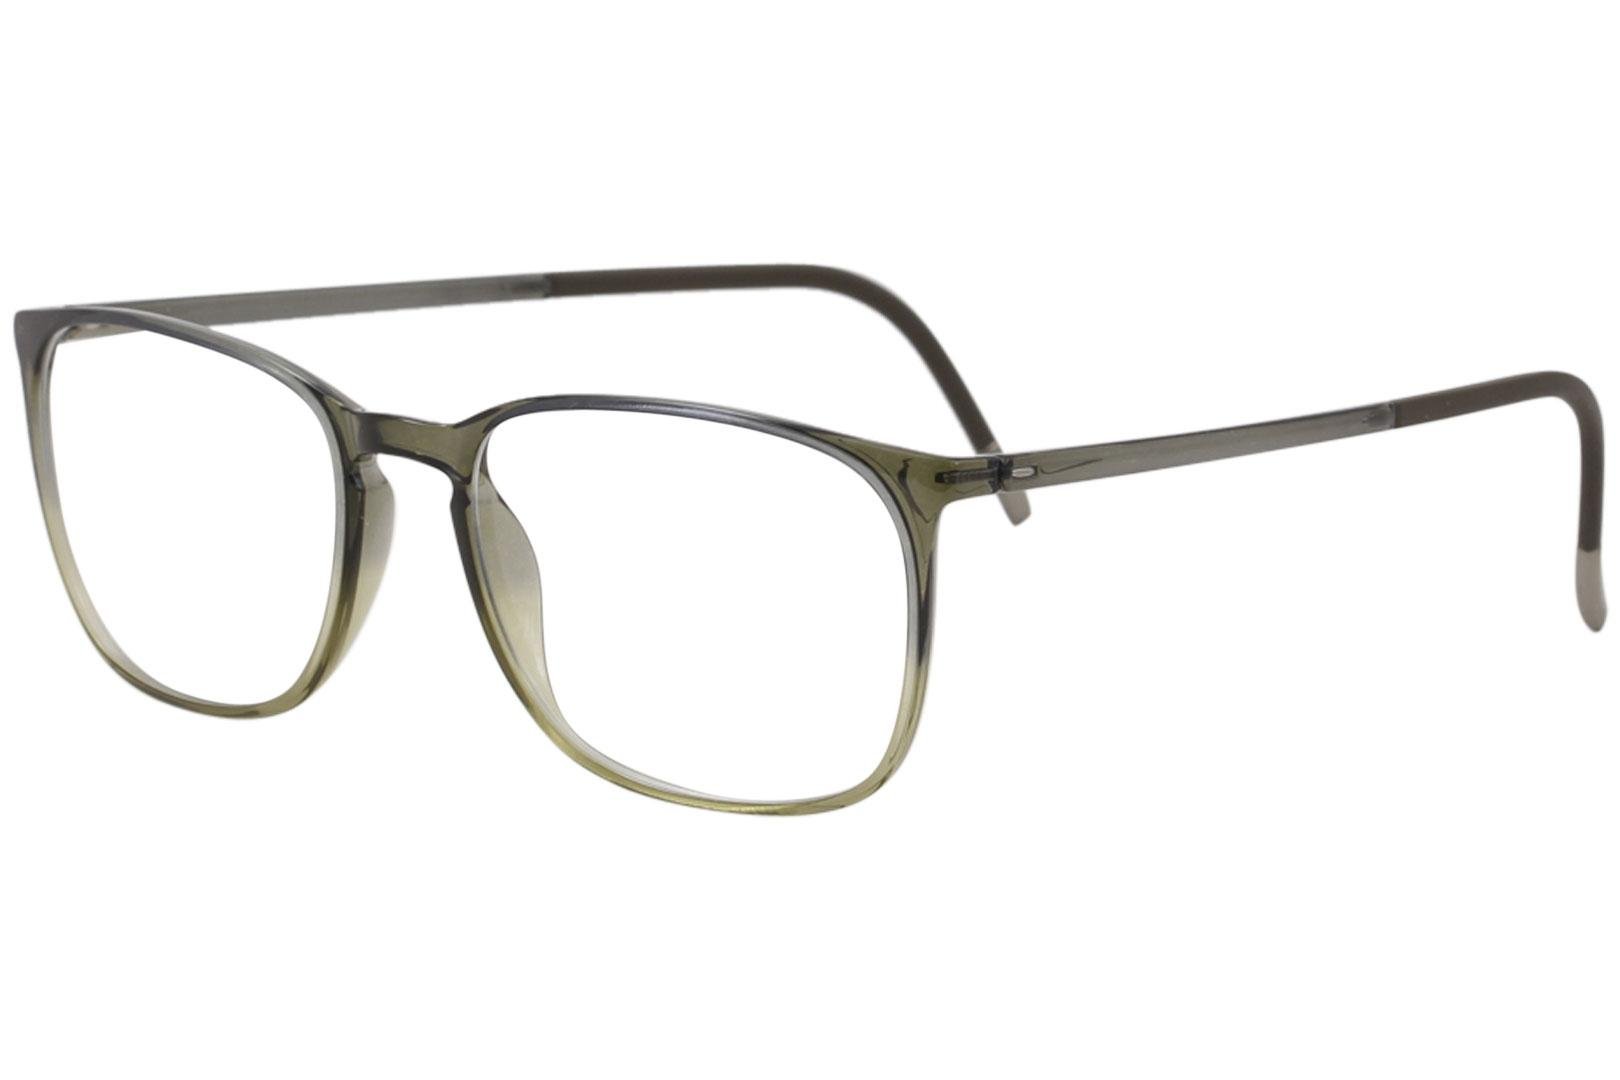 bd5597a3b5fa Silhouette Men's Eyeglasses SPX Illusion 2911 Full Rim Optical Frame by  Silhouette. Touch to zoom